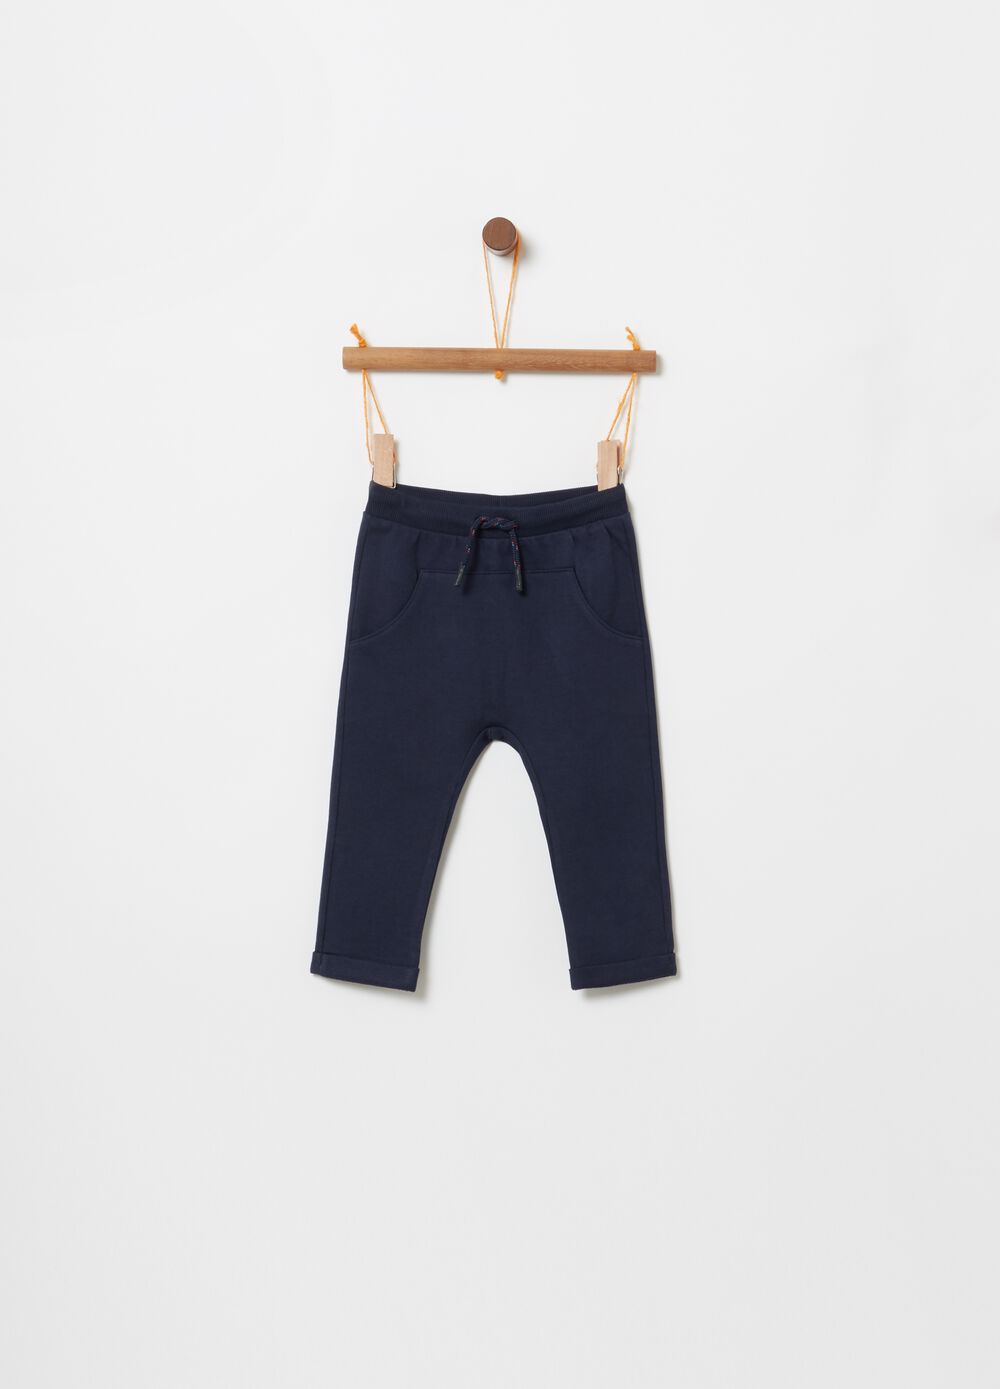 100% organic cotton French terry trousers